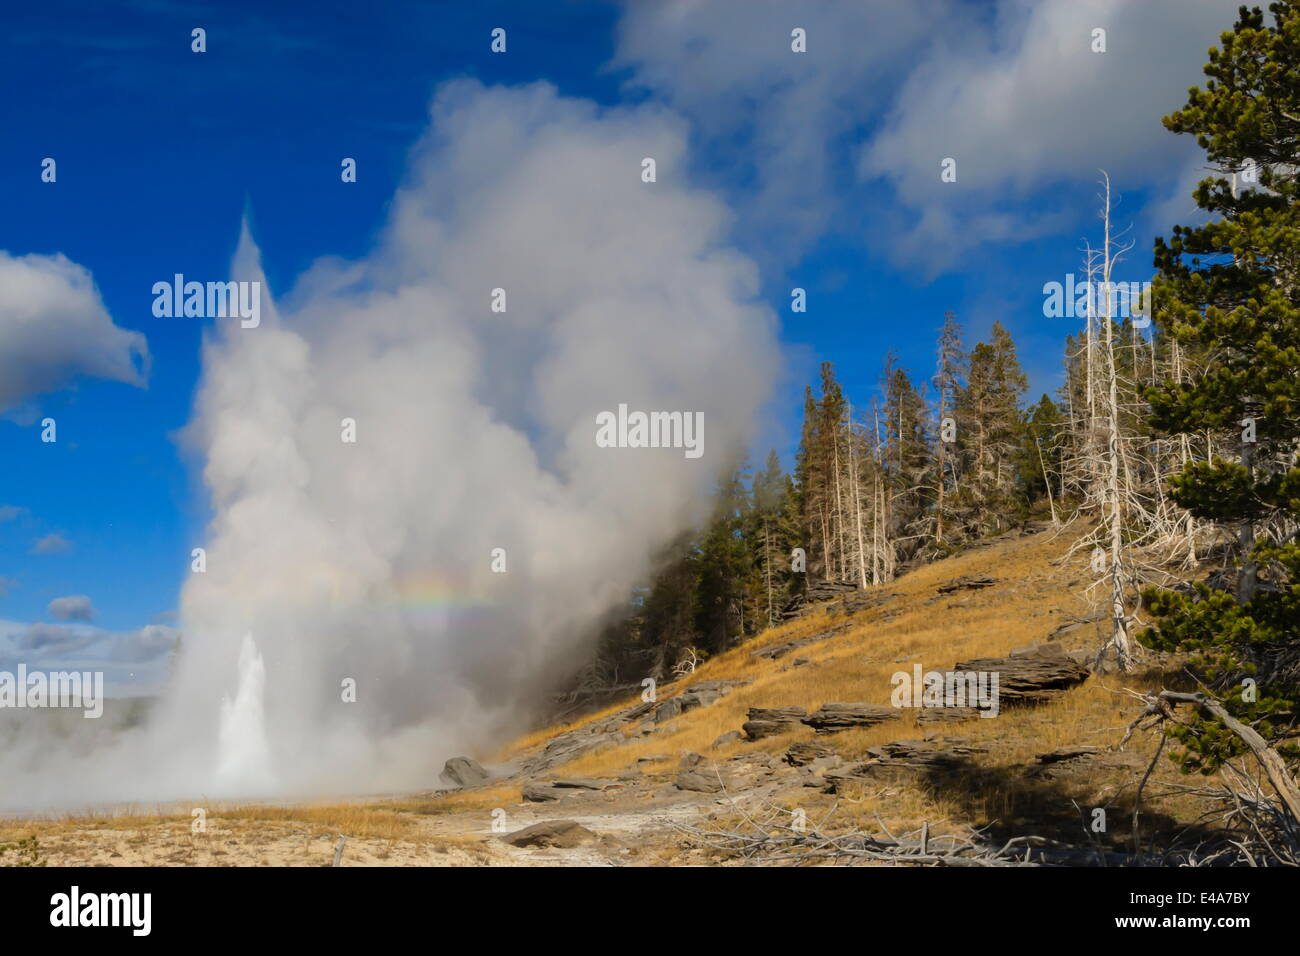 Grand Geyser erupts, forcing steam high into the air, Upper Geyser Basin, Yellowstone National Park, UNESCO, Wyoming, - Stock Image